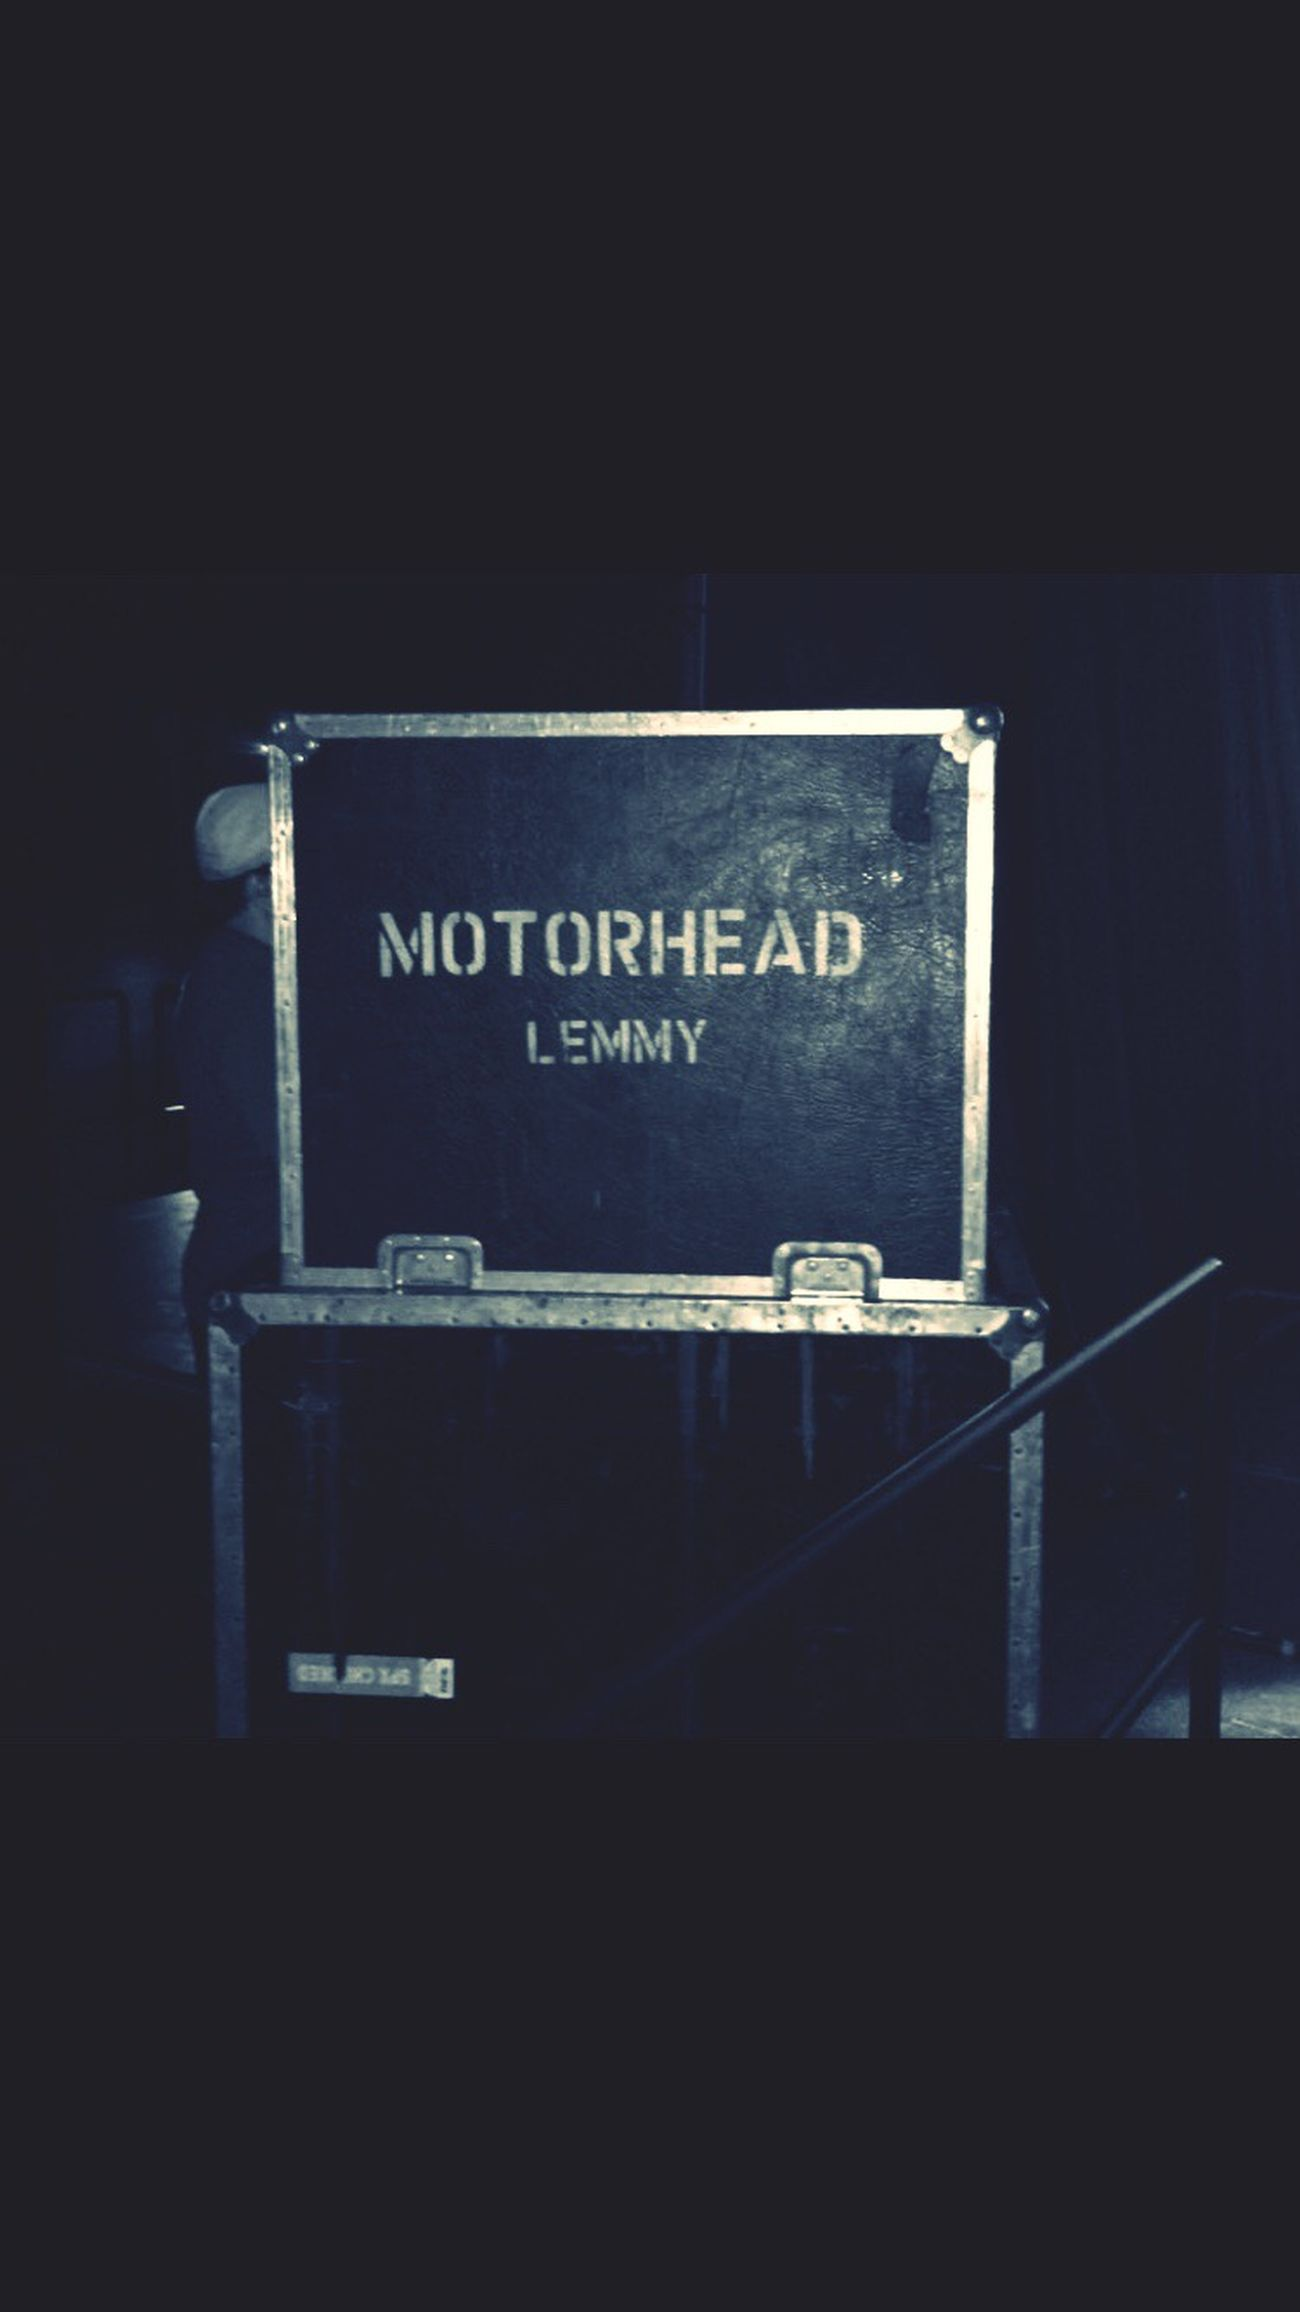 Motörhead Stage - Performance Space Music No People LemmyKilmister Motörhead Friends Rocknroll First Eyeem Photo